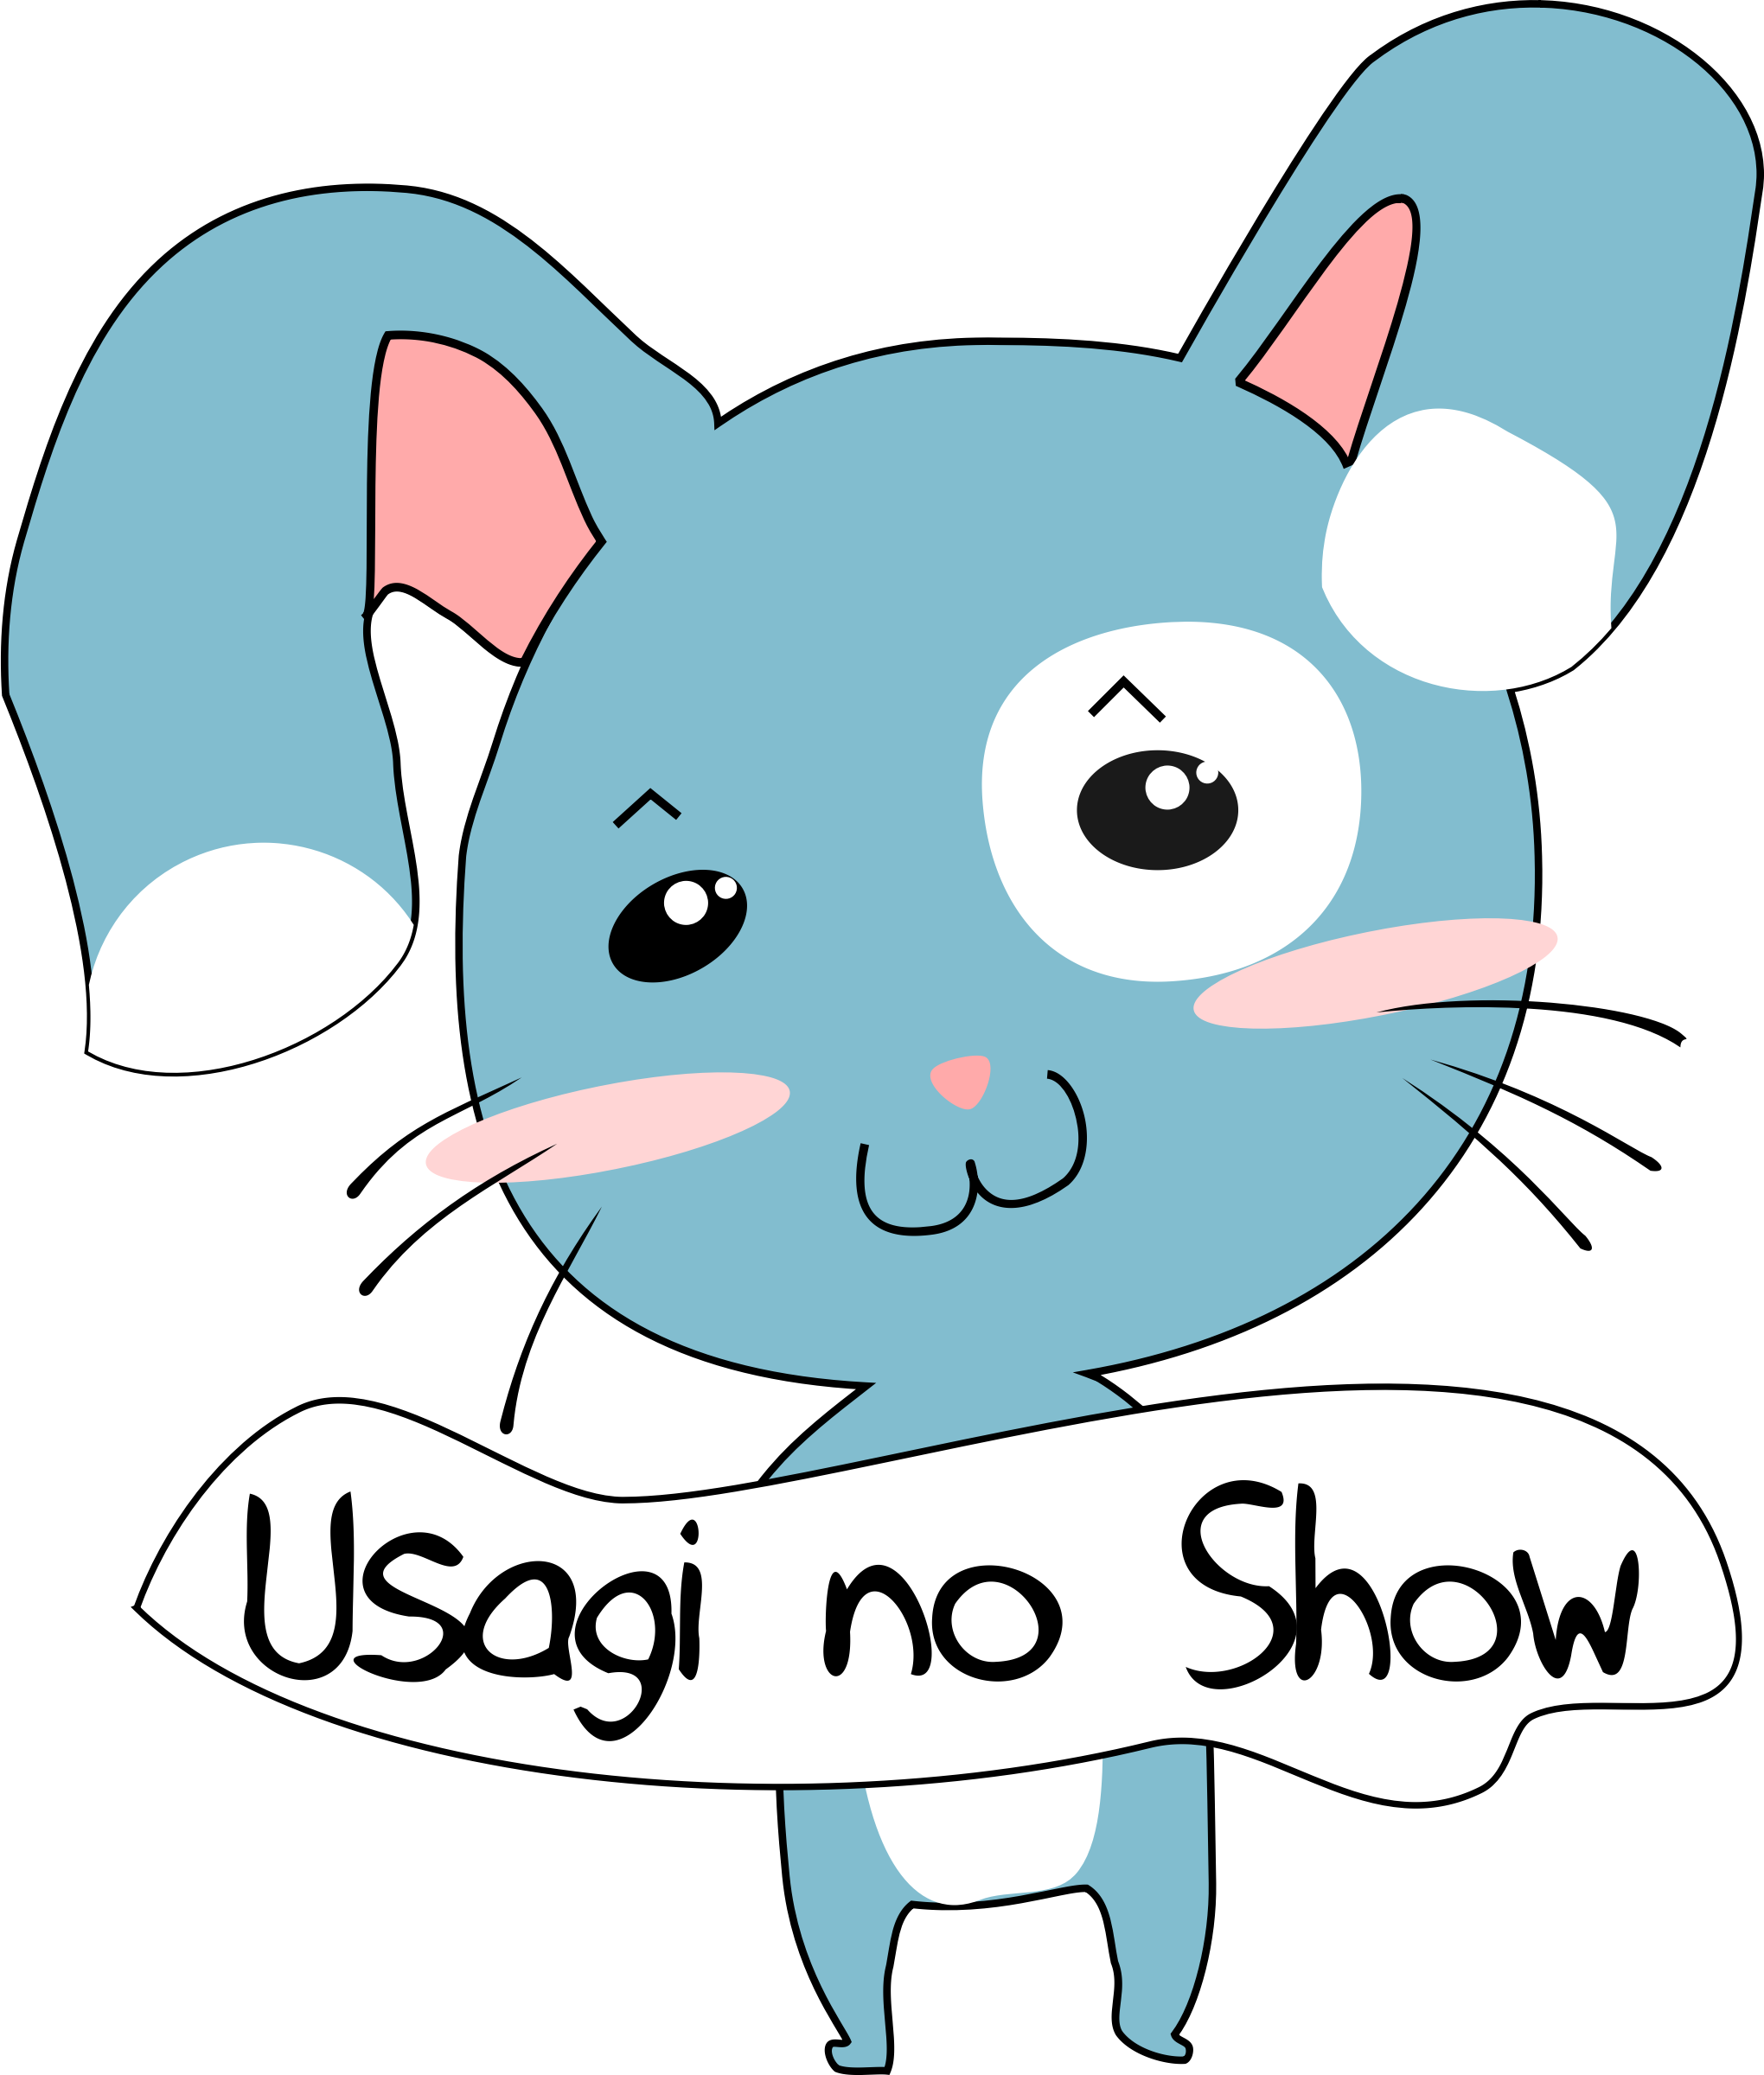 Usagi No Show by stilg4r